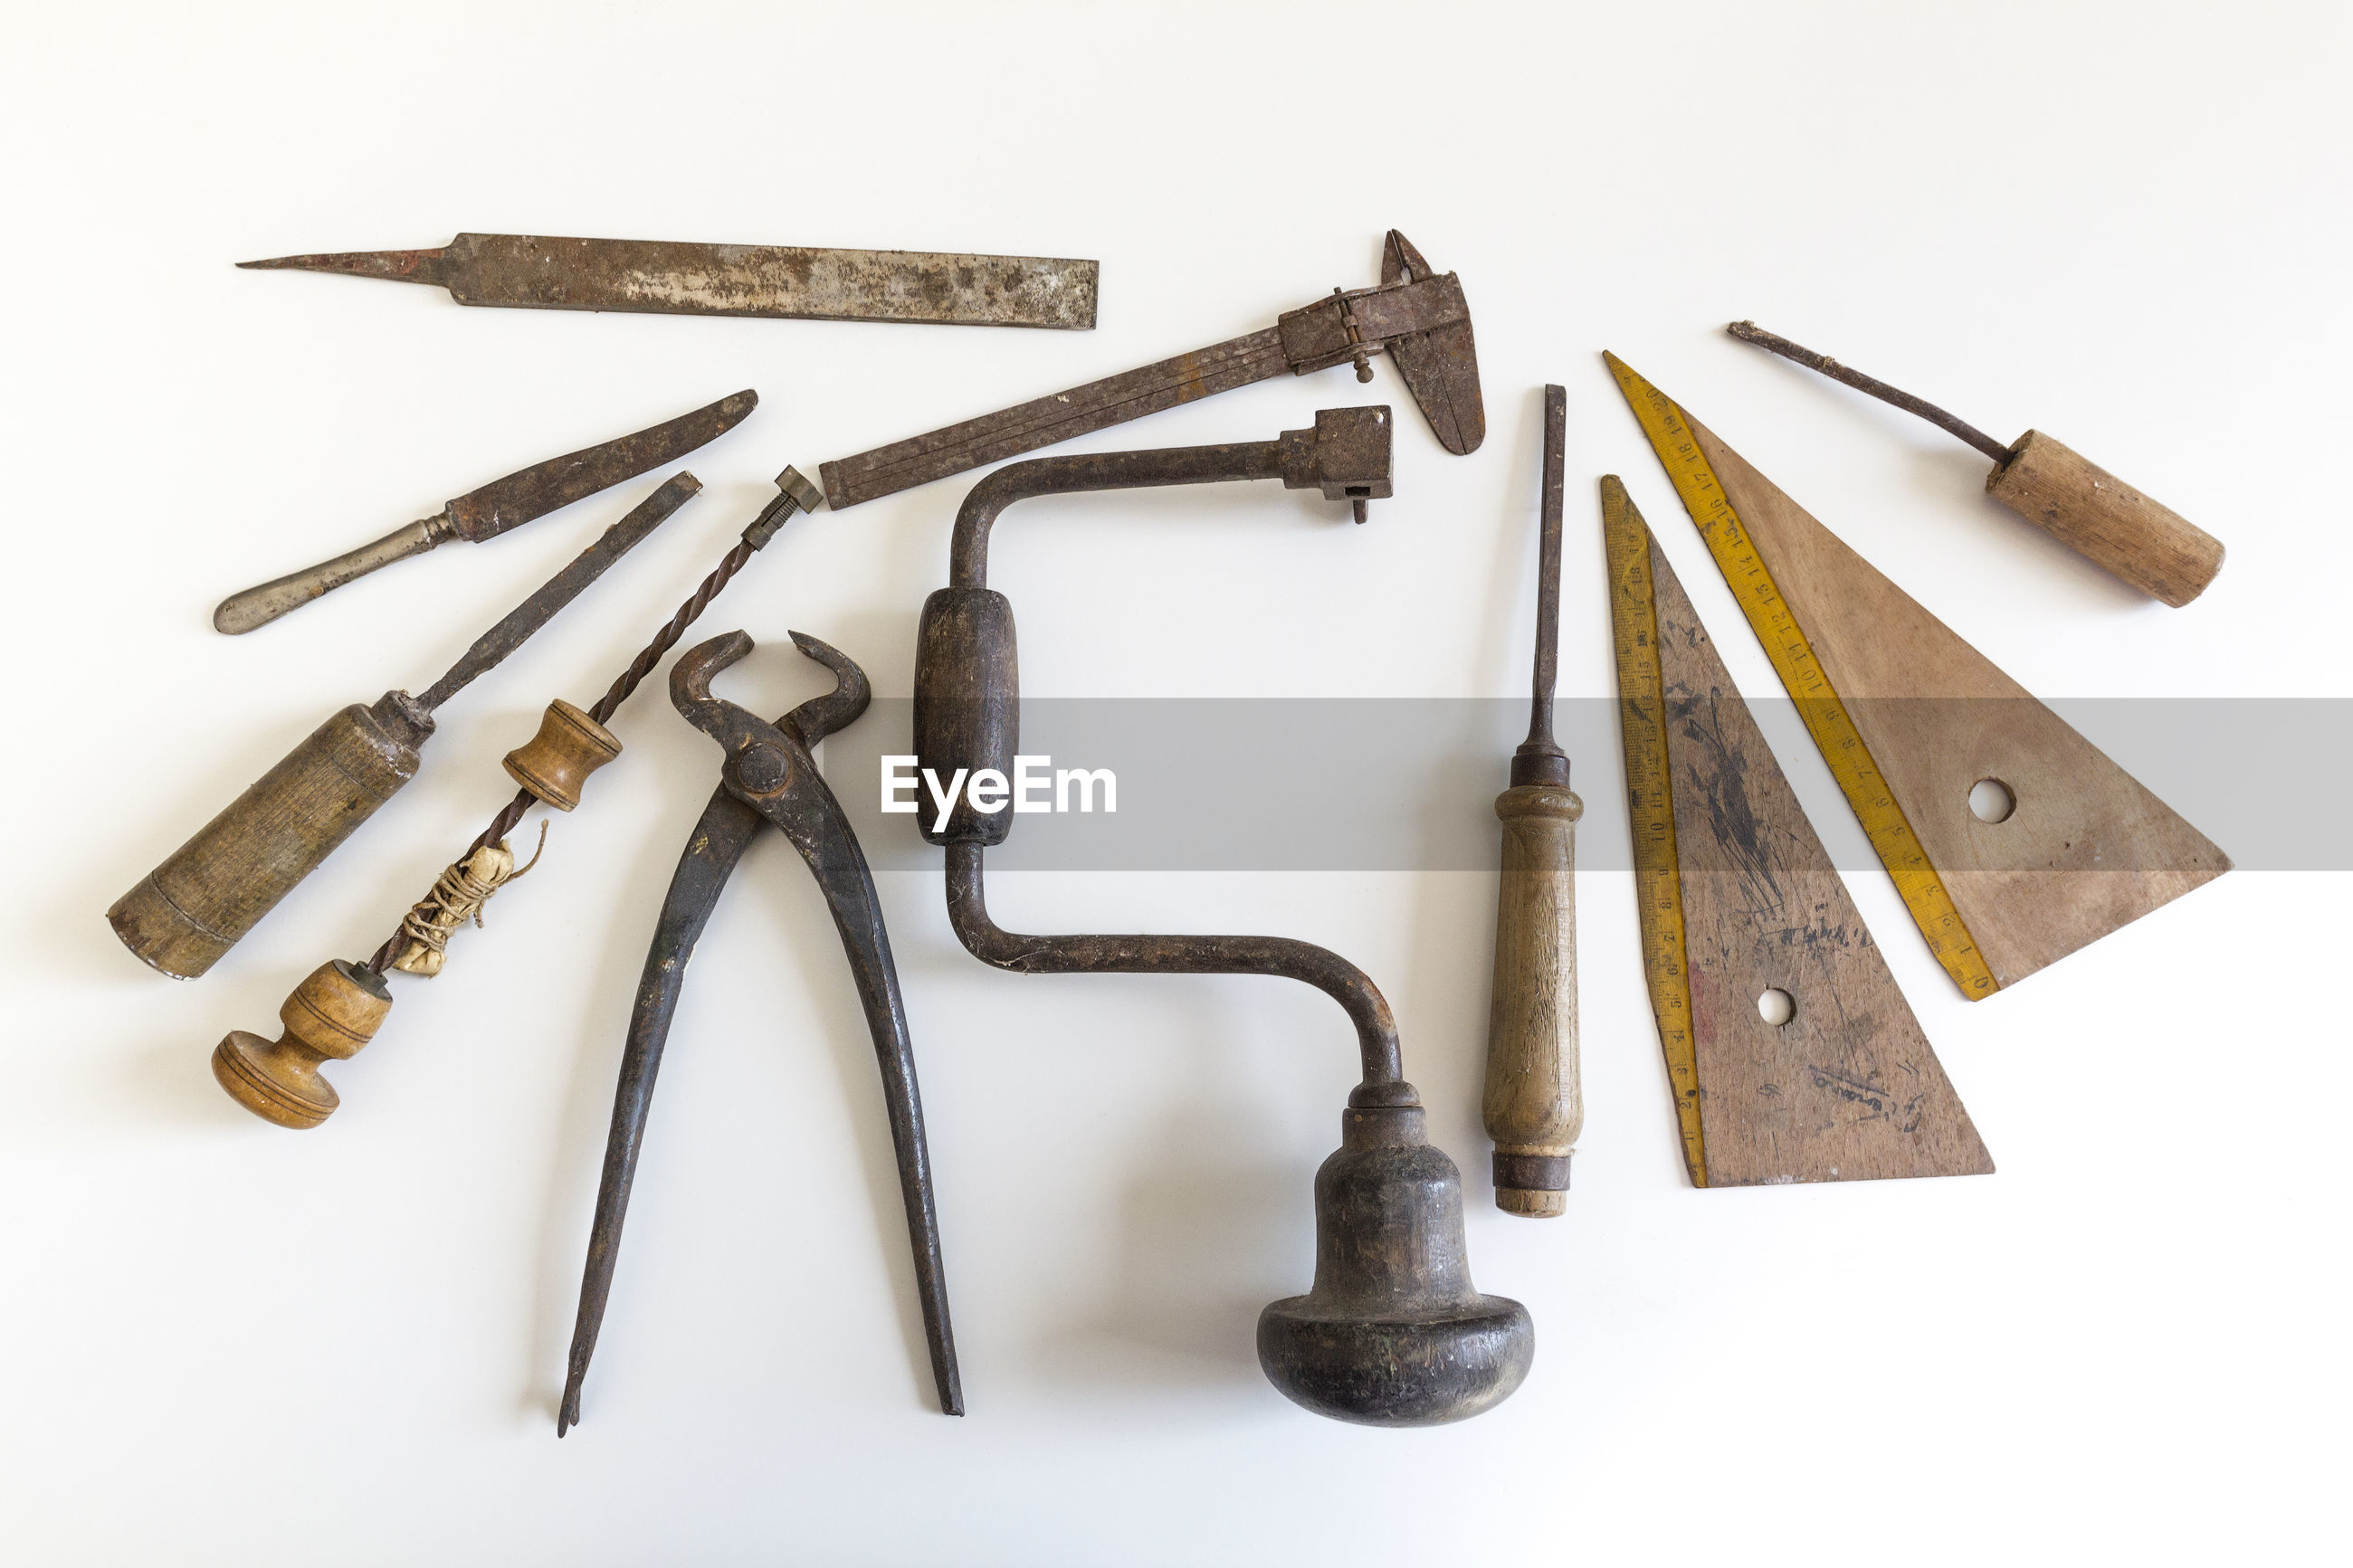 Directly above shot of tools on table against white background